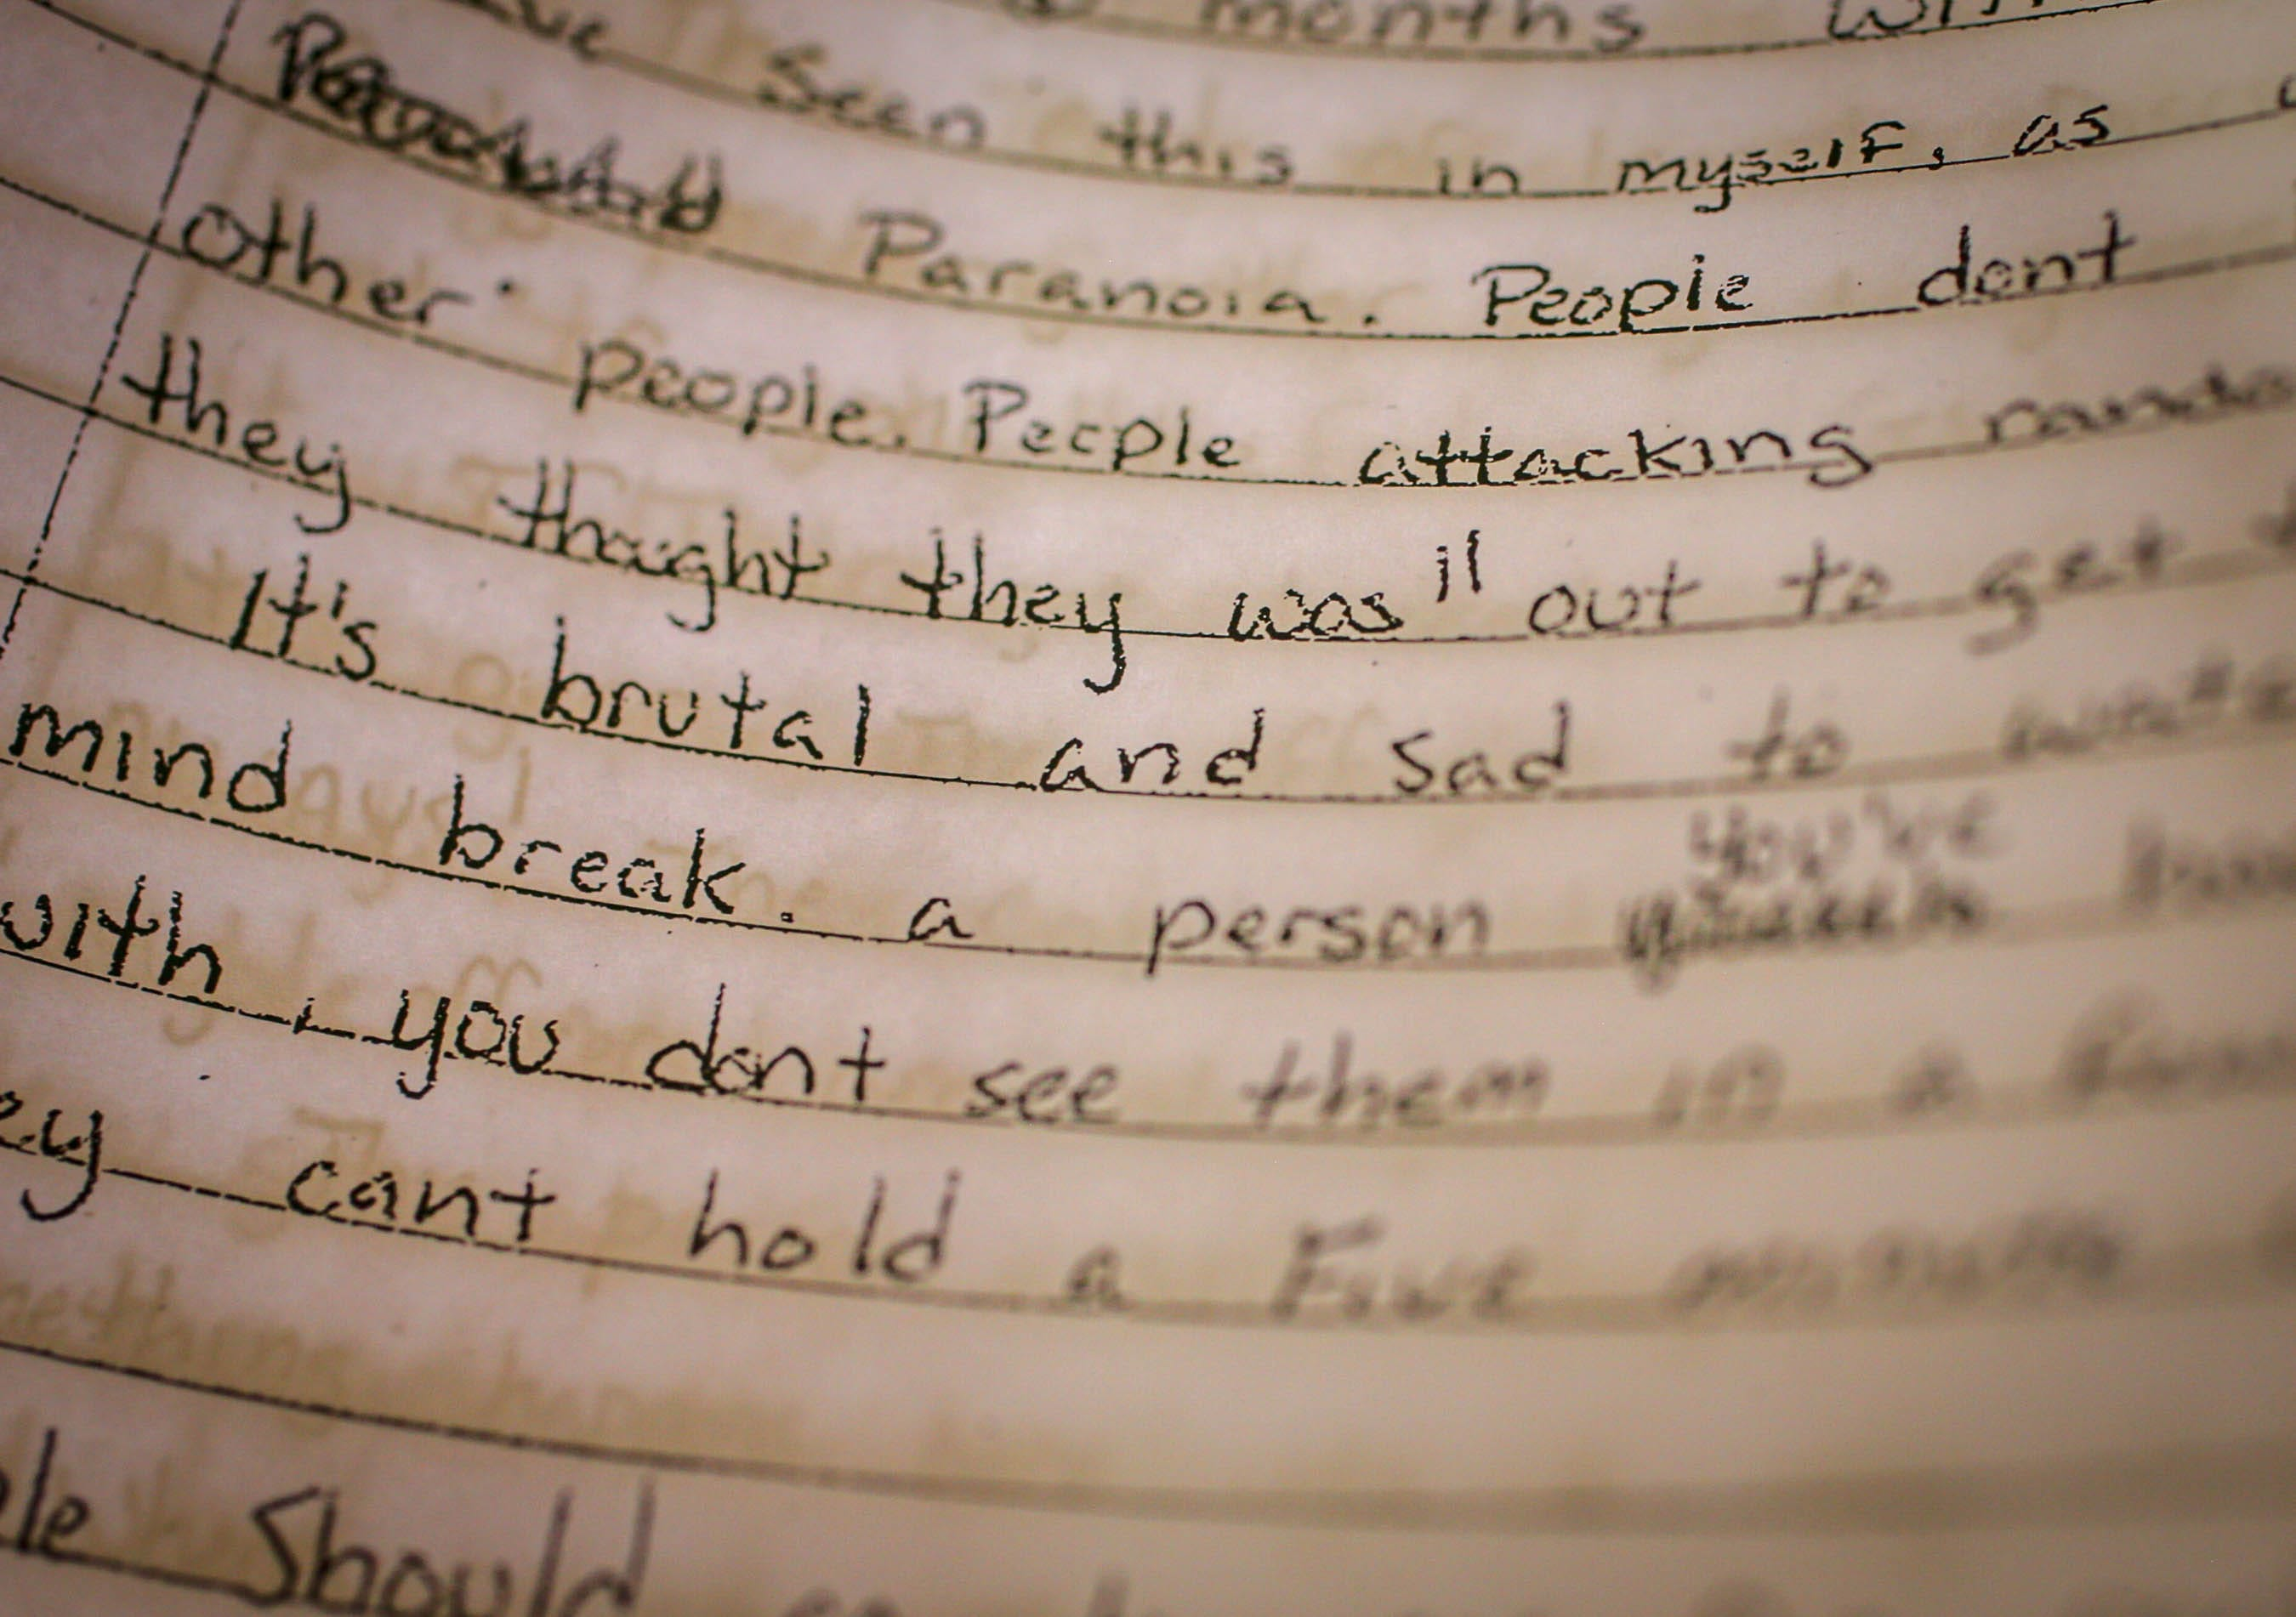 A portion of an inmate's letter describing the mental health toll of being confined to a cell for 22½ hours a day.